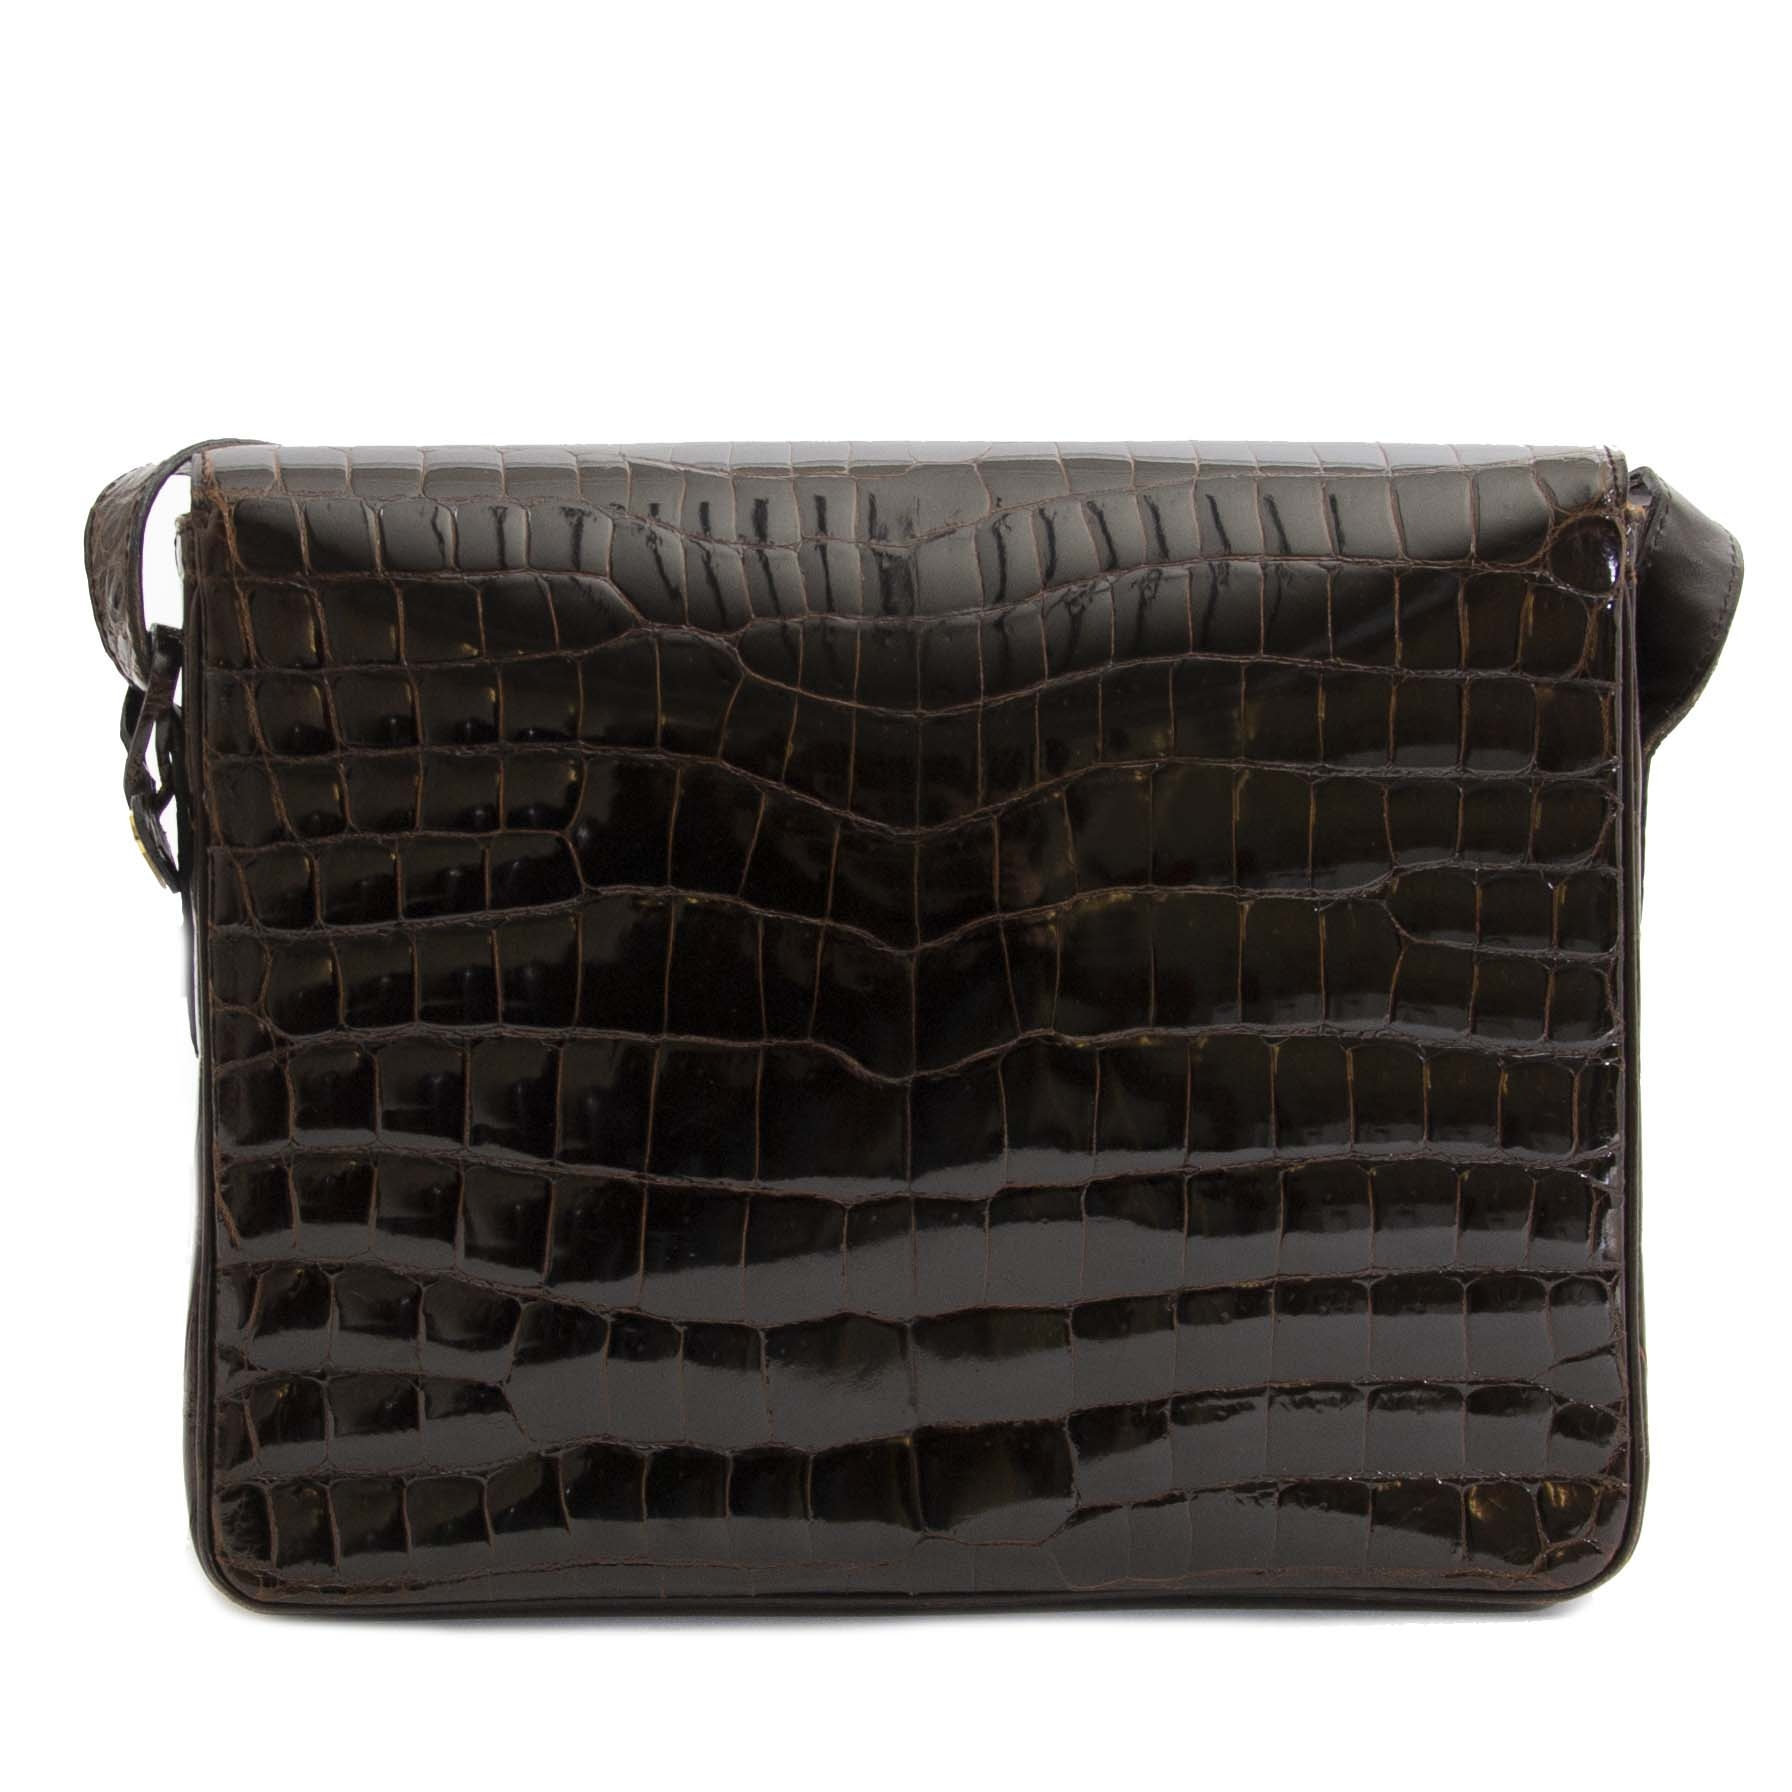 Authentic second hand vintage Delvaux Dark Brown Croco Passerelle Shoulder Bag buy online webshop LabelLOV